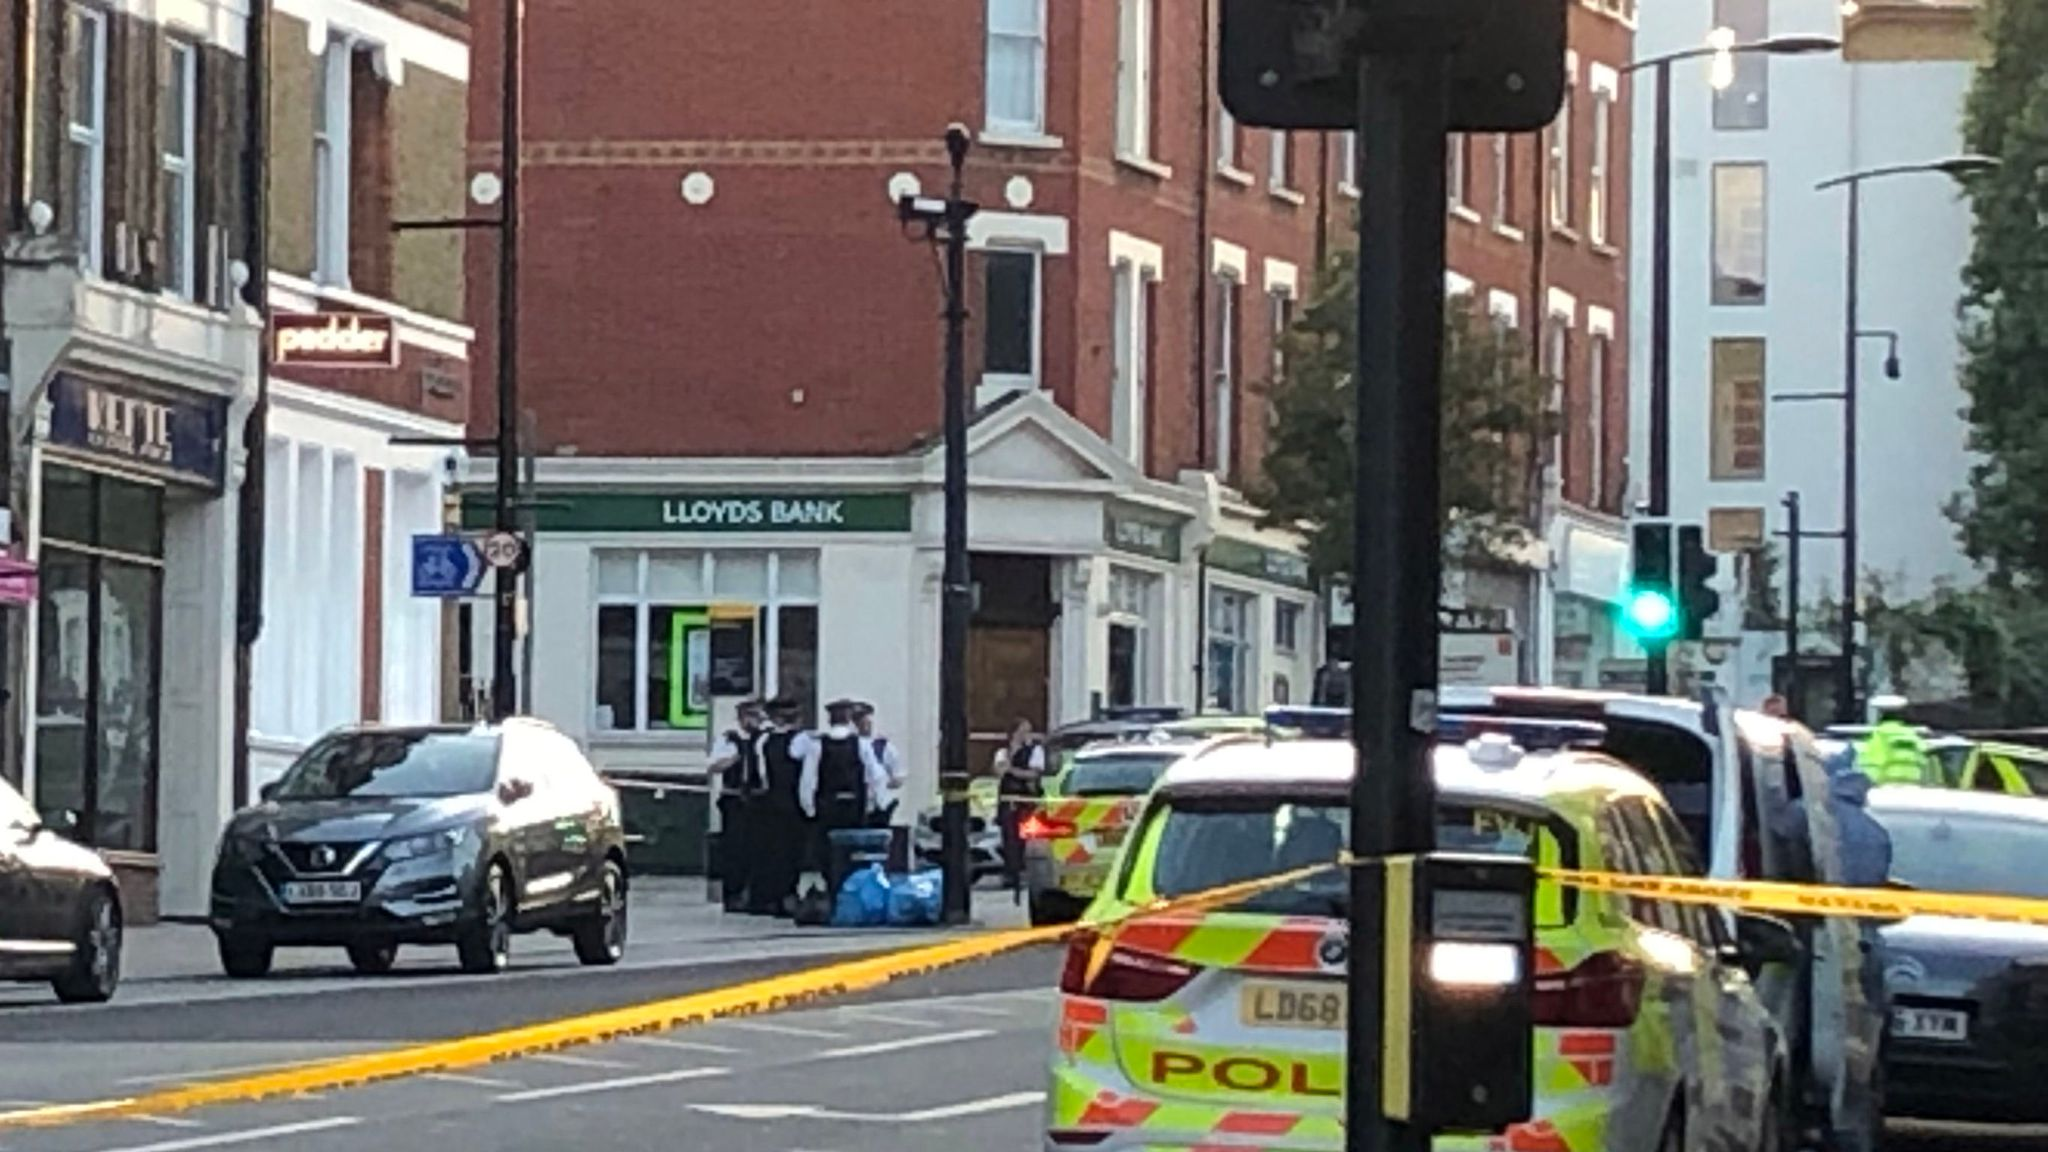 Man killed in southeast London 'accidentally shot himself